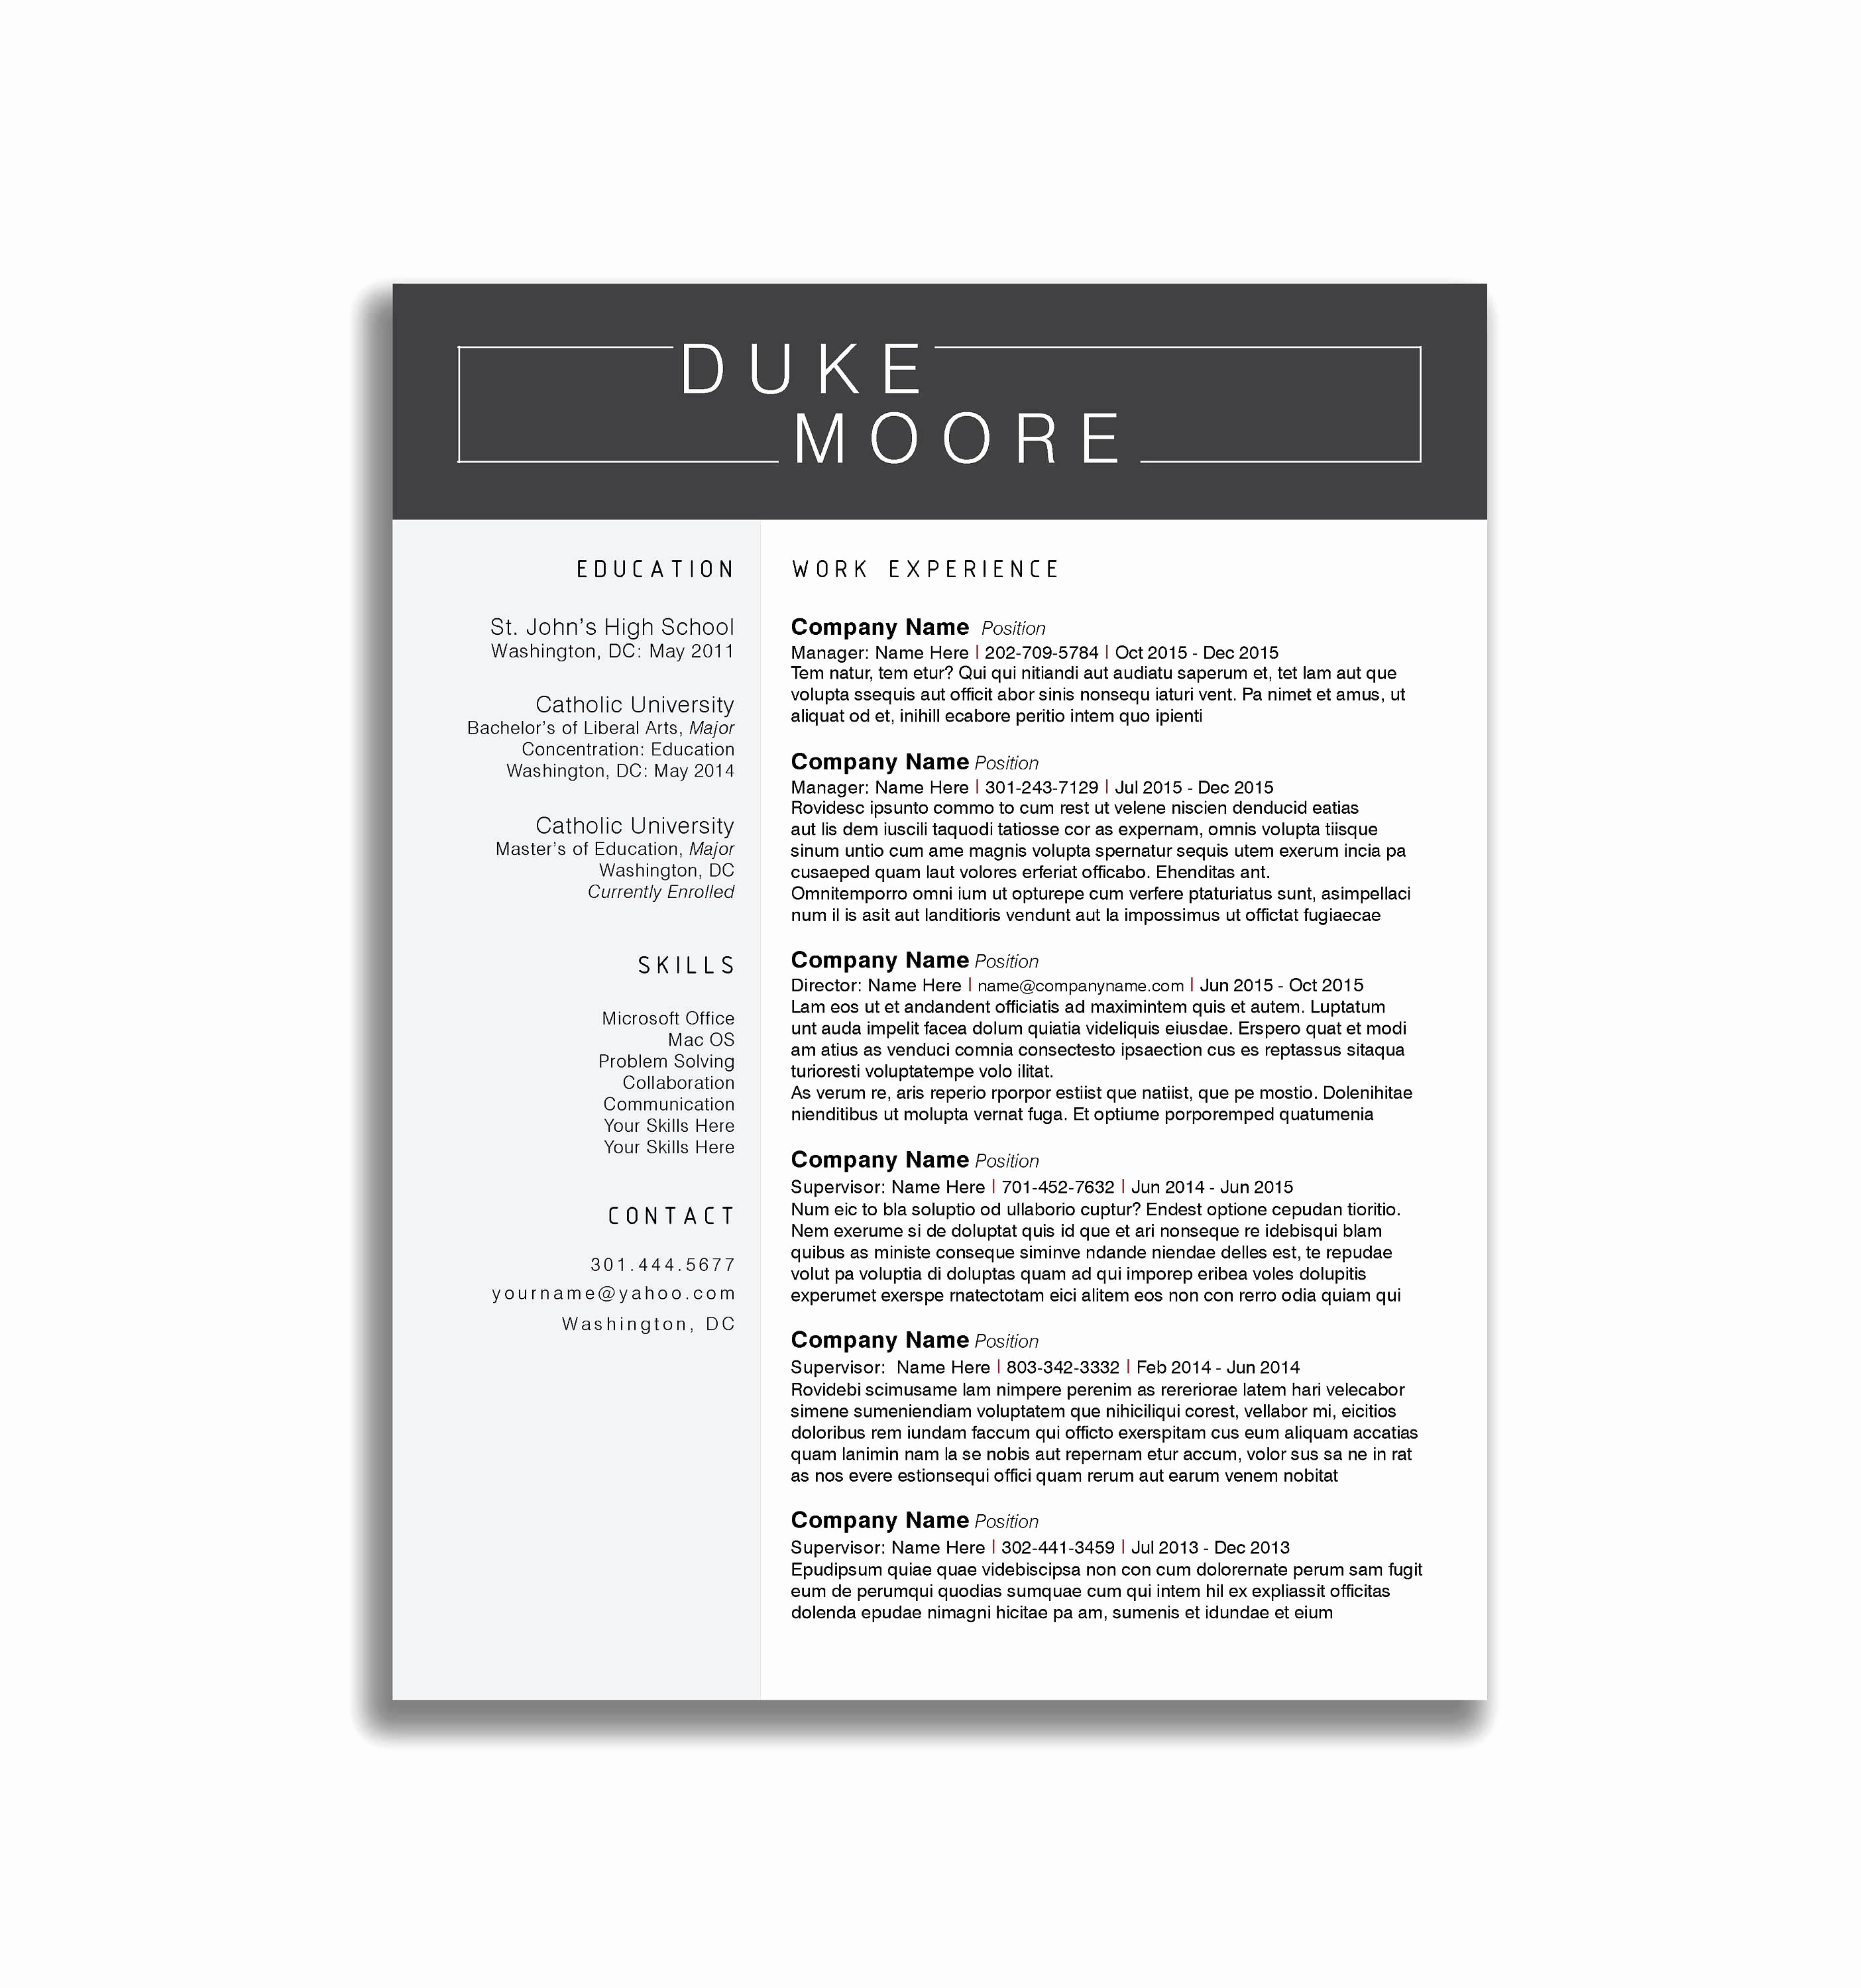 Resume Names that Stand Out Examples - Making Resumes Stand Out Cover Letters that Stand Out Luxury 13